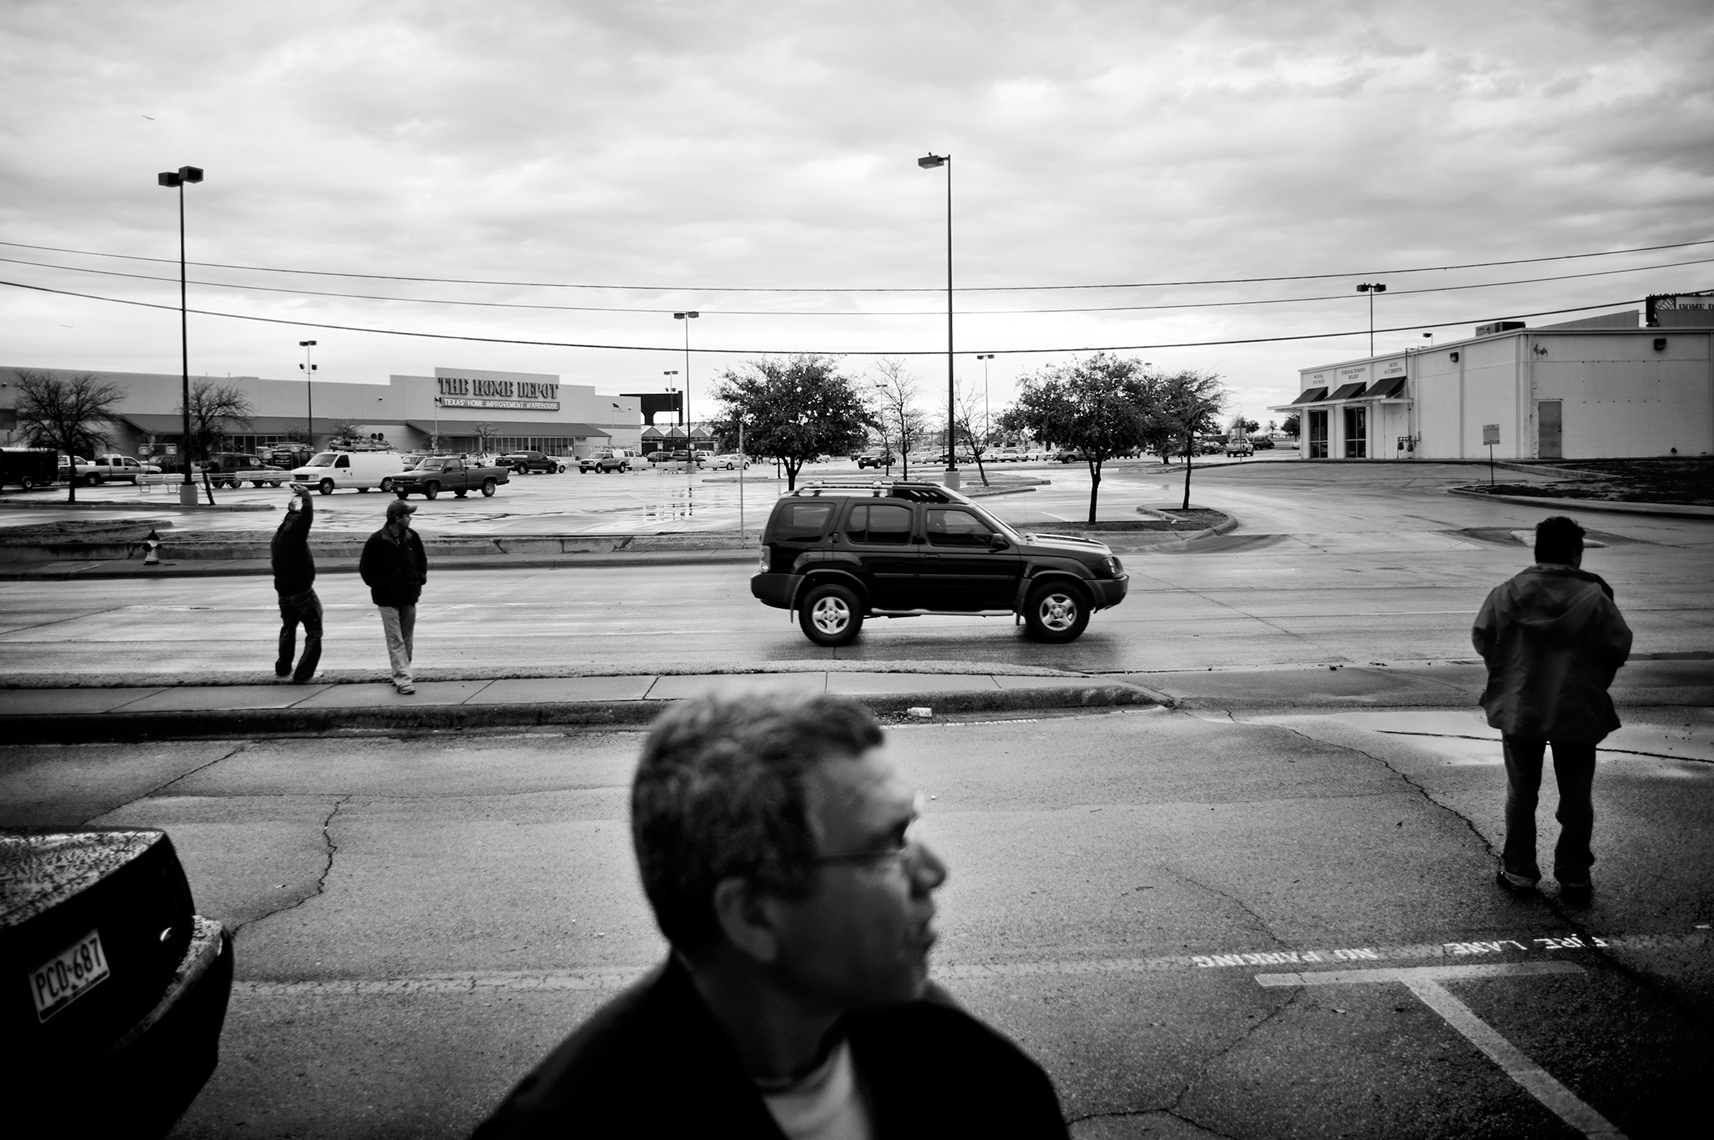 thibodeaux_brandon_immigration_south_texas_00044